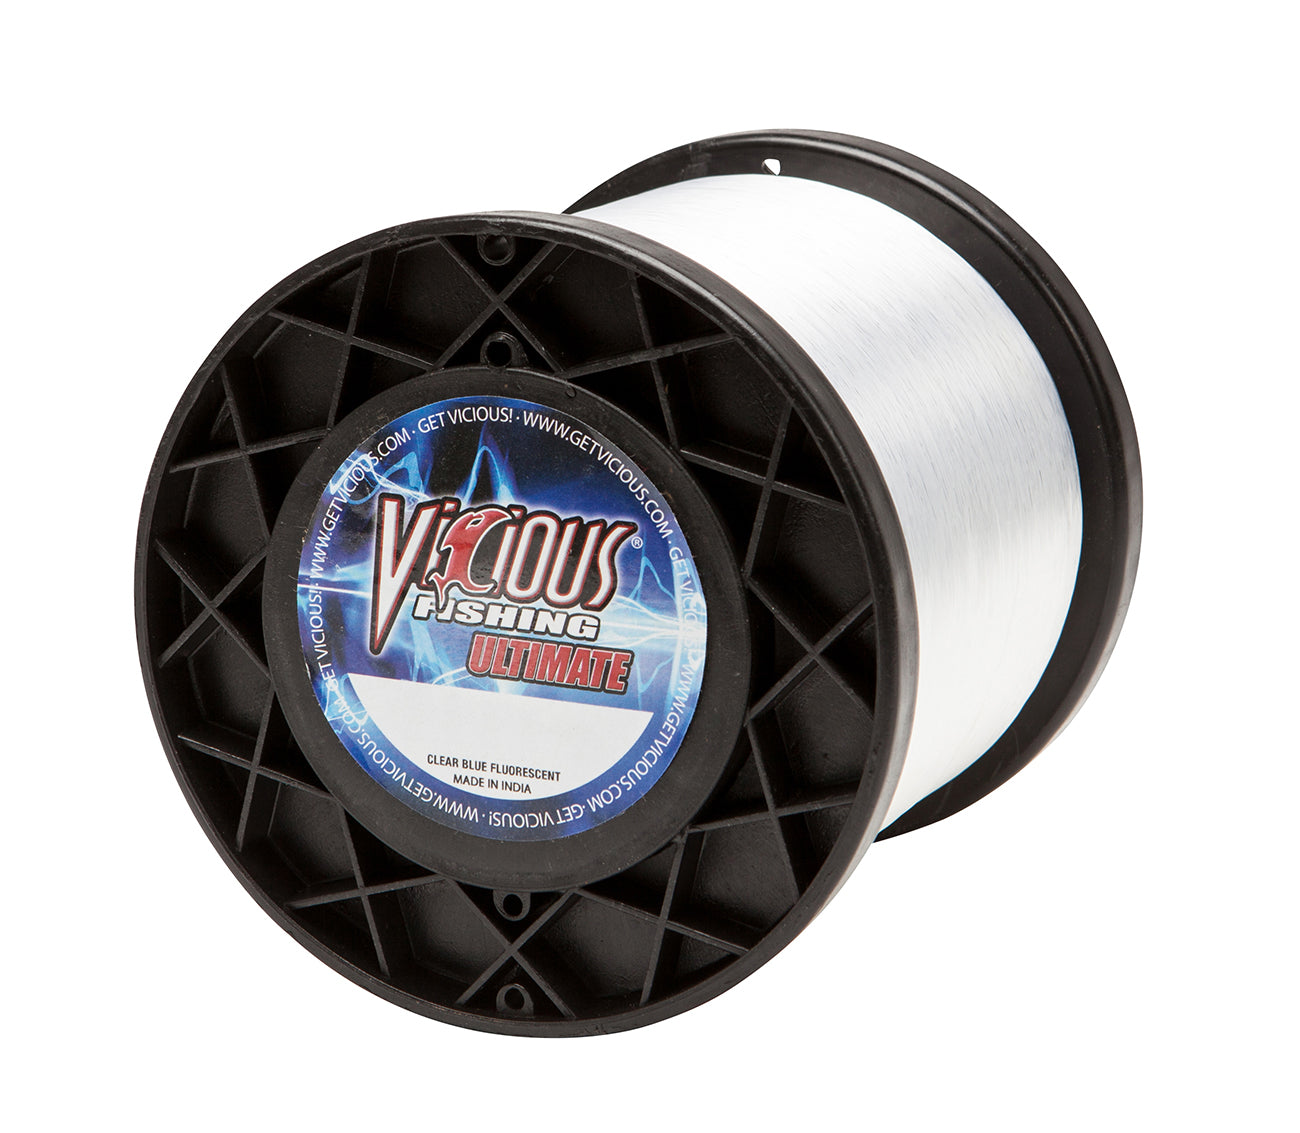 20lb Vicious Clear Blue Ultimate - 2,400 Yards